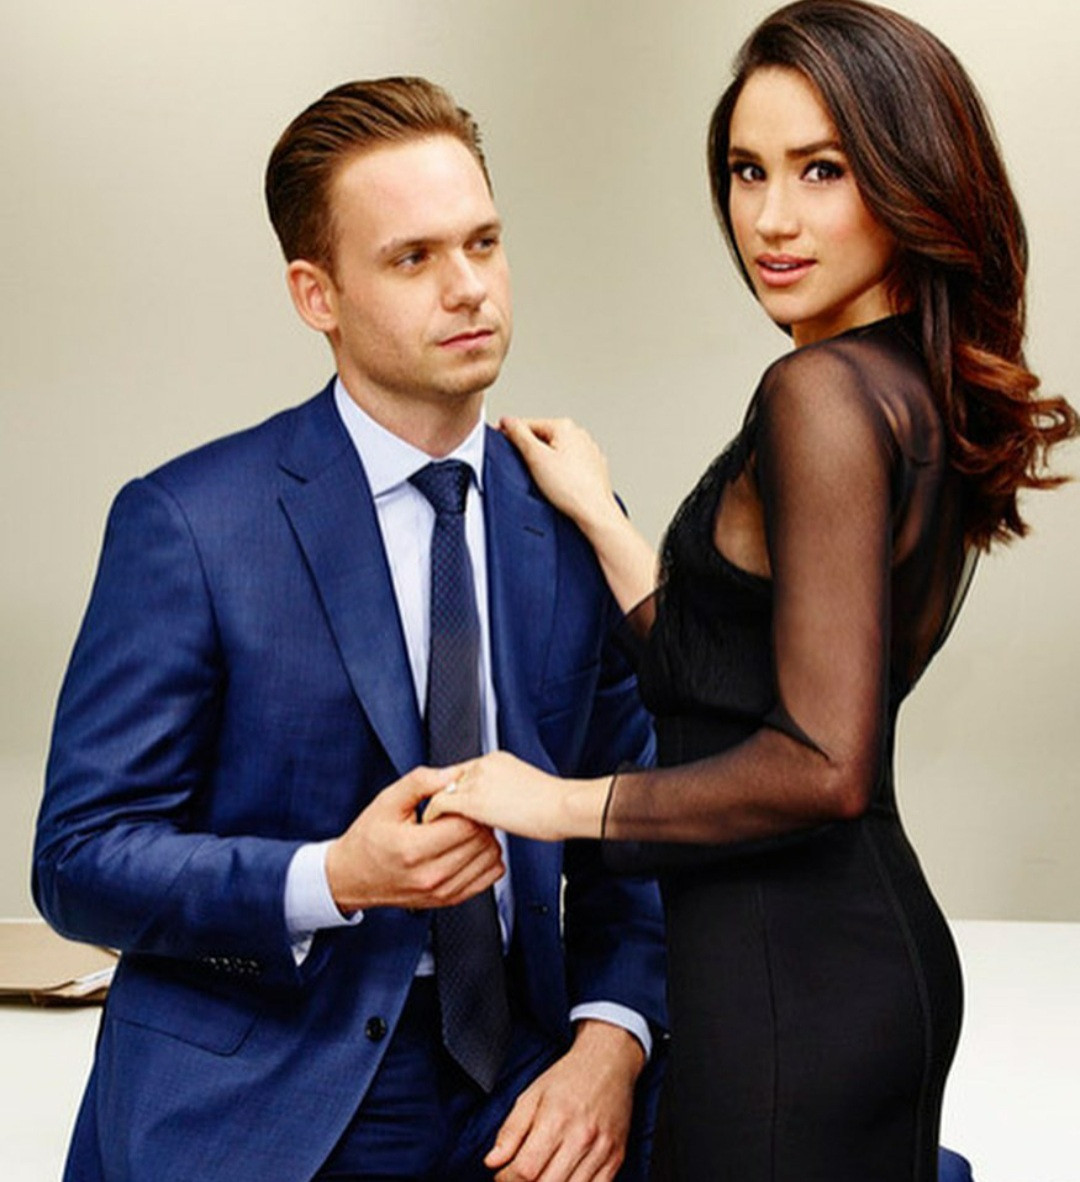 Meghan Markle's Suits on-screen husband, Patrick Adams, blasts royal family and the British media as he defends the Duchess of Sussex